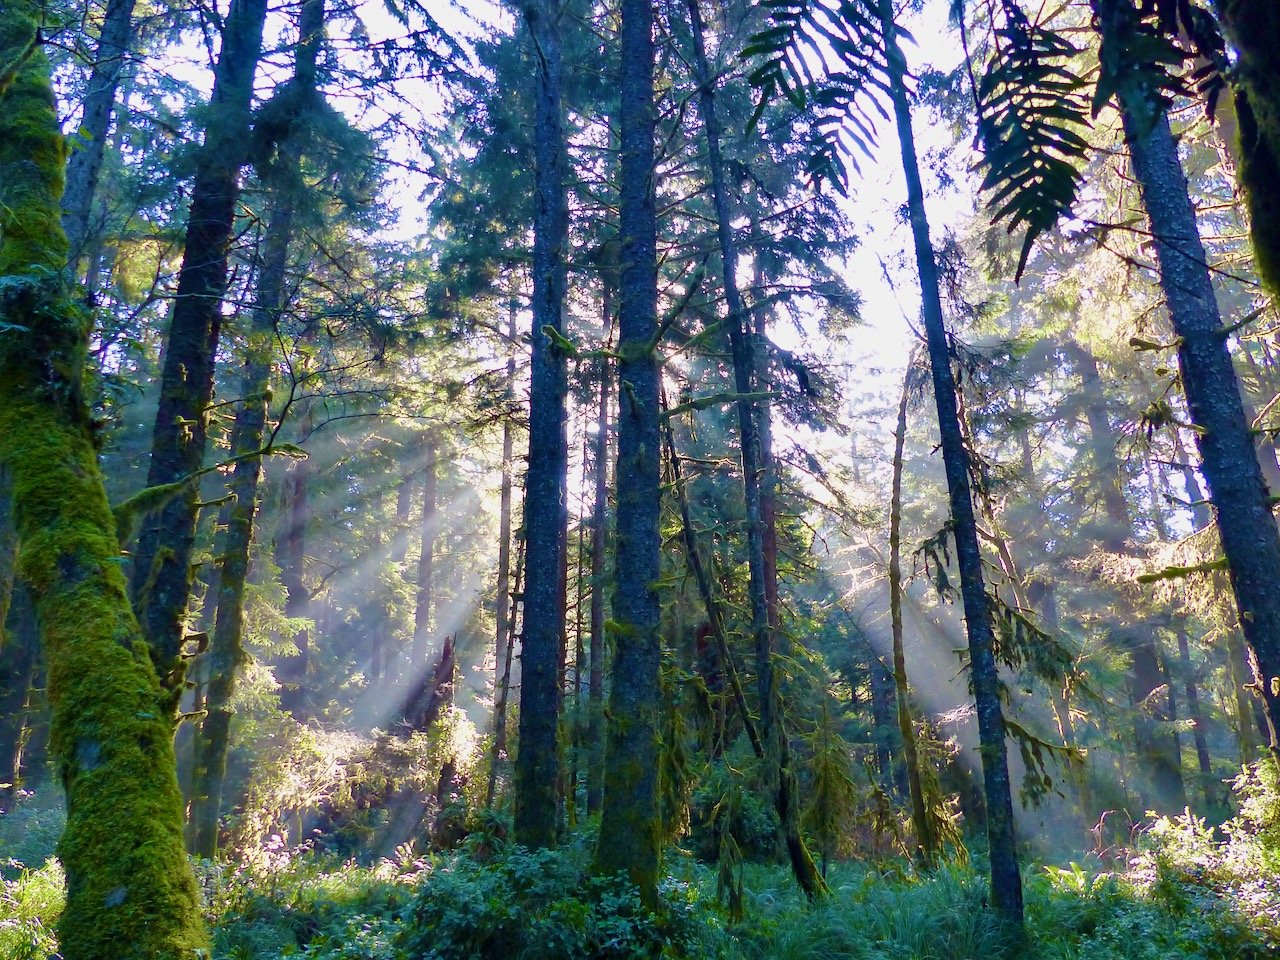 Redwood forest sunlight